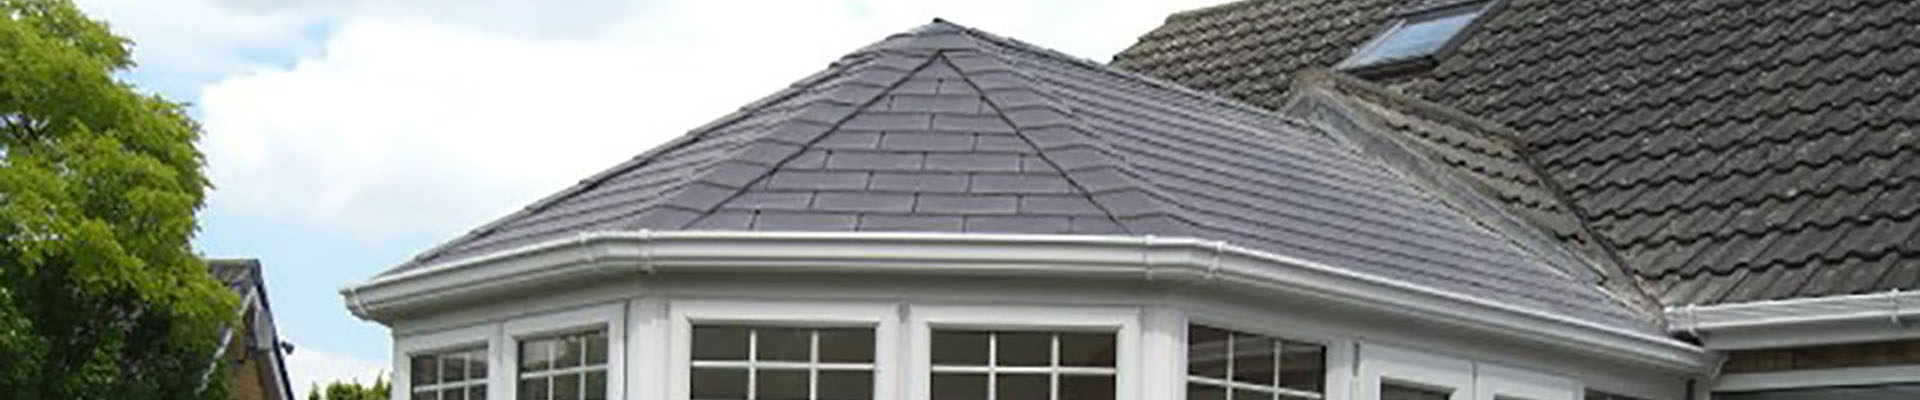 Solid Roofs by Mirage of Lancaster